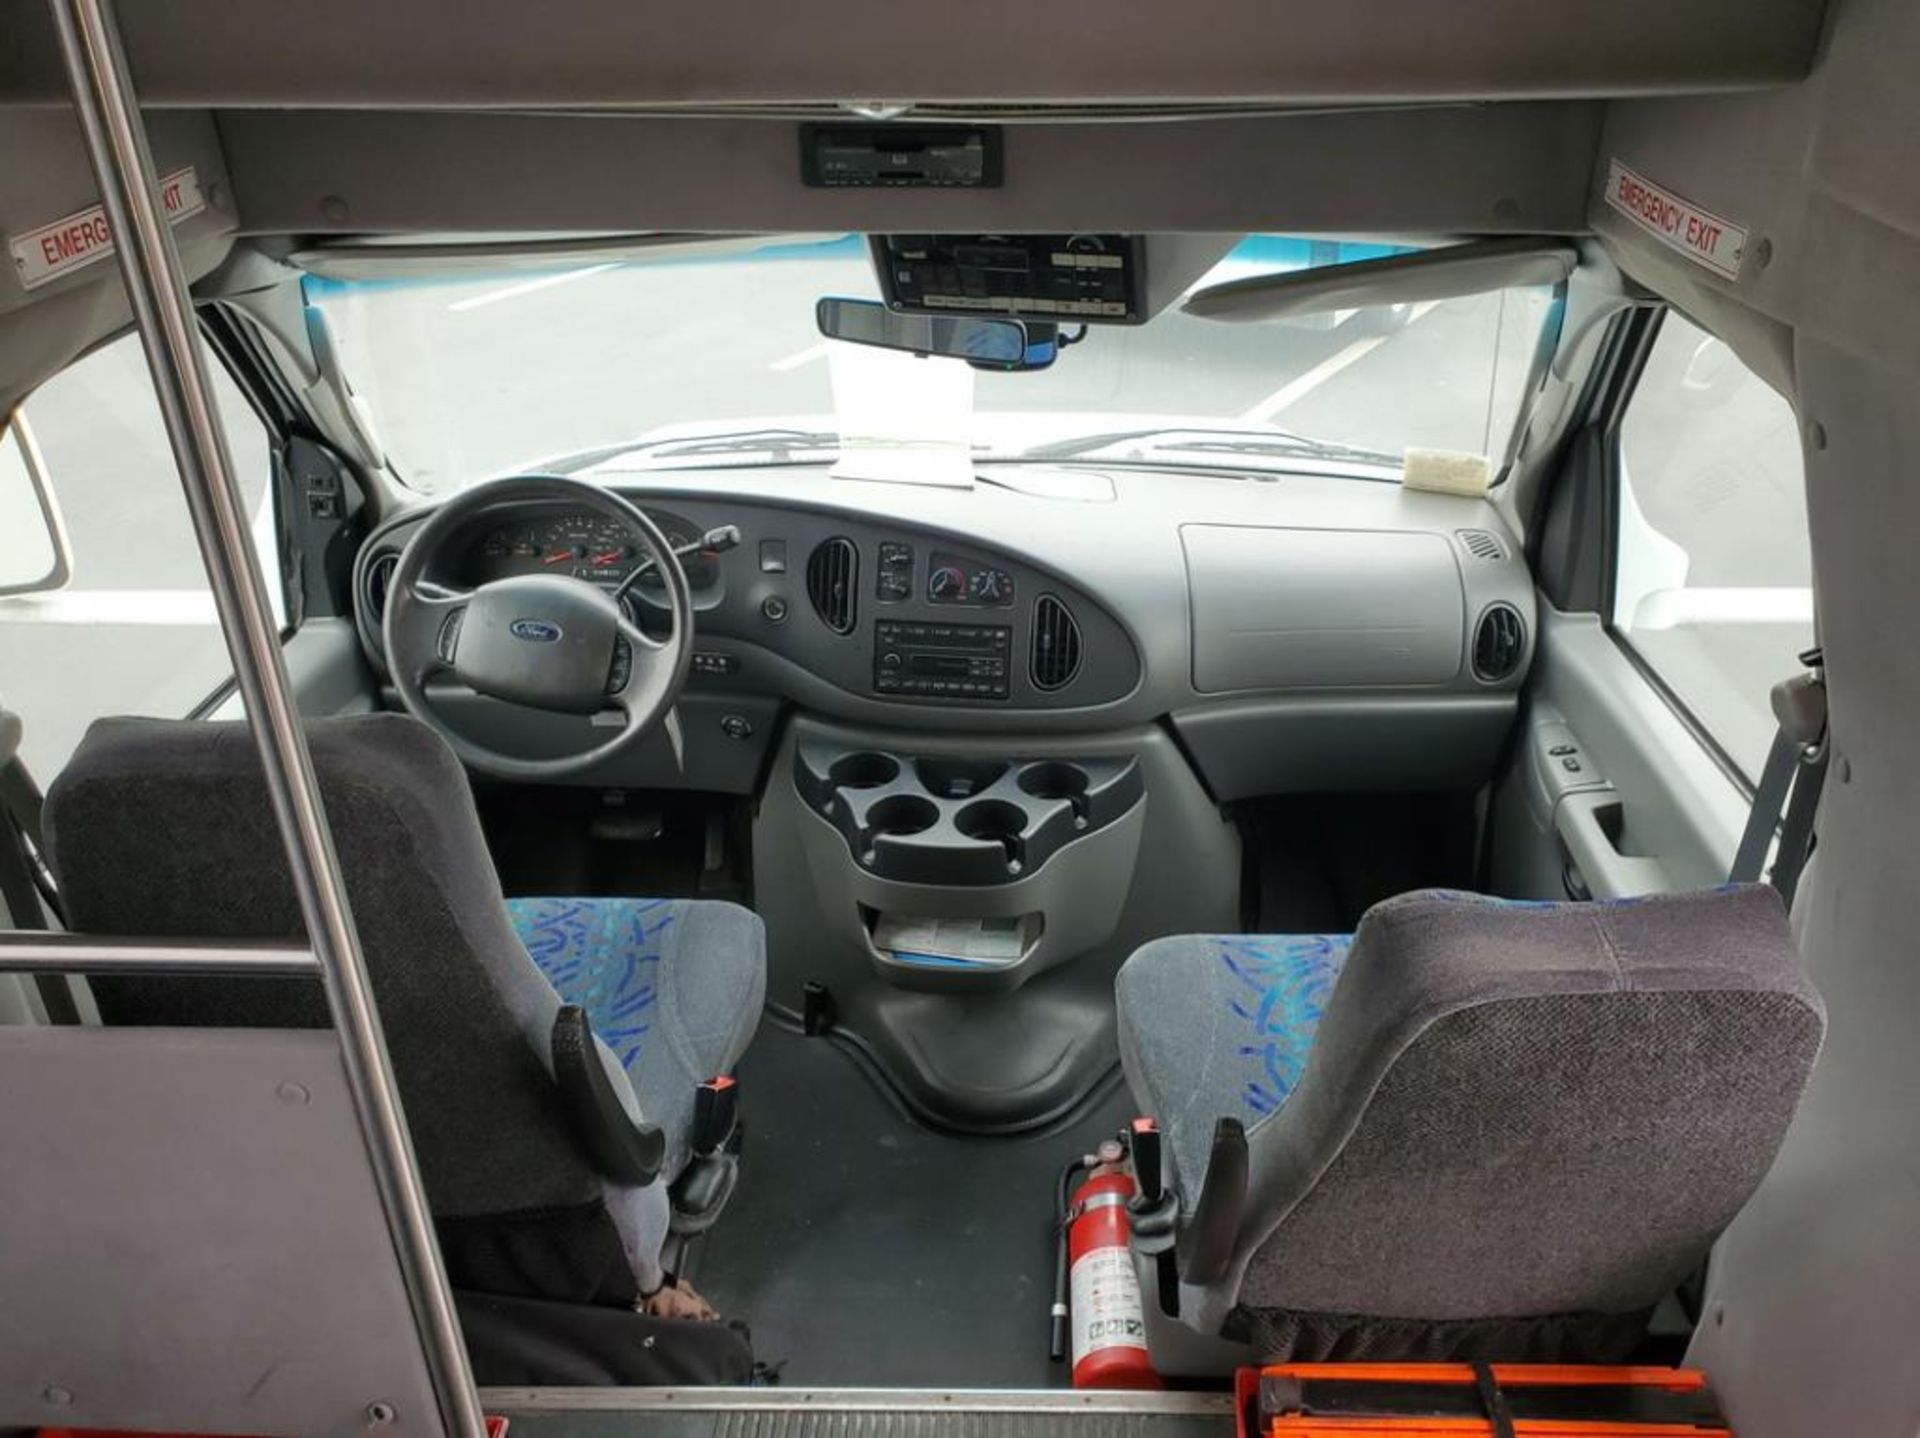 FORD E450 Turtle Top Shuttle Bus - Image 6 of 15